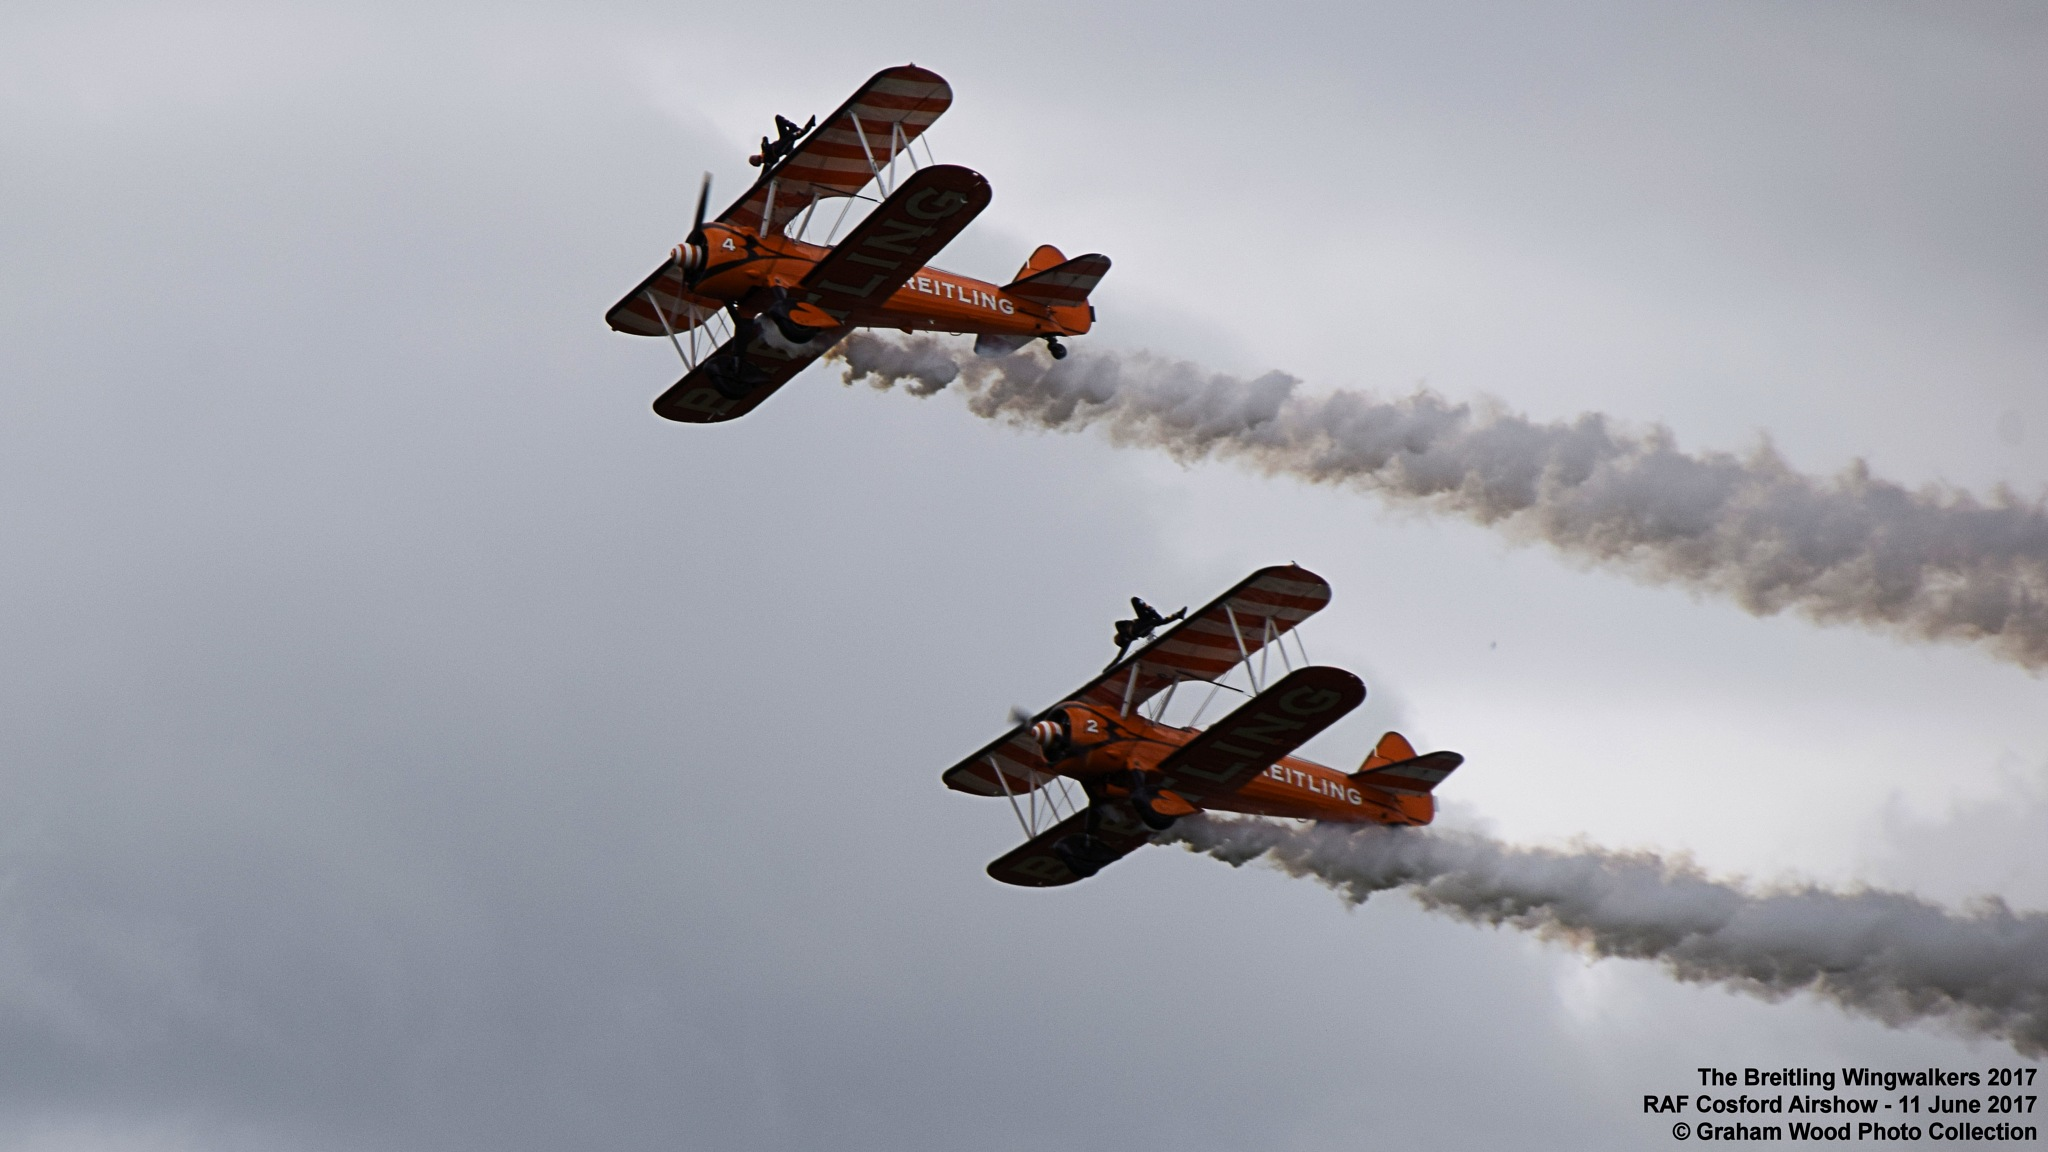 The Breitling Wingwalkers 2017 by Graham Wood Photo Collection